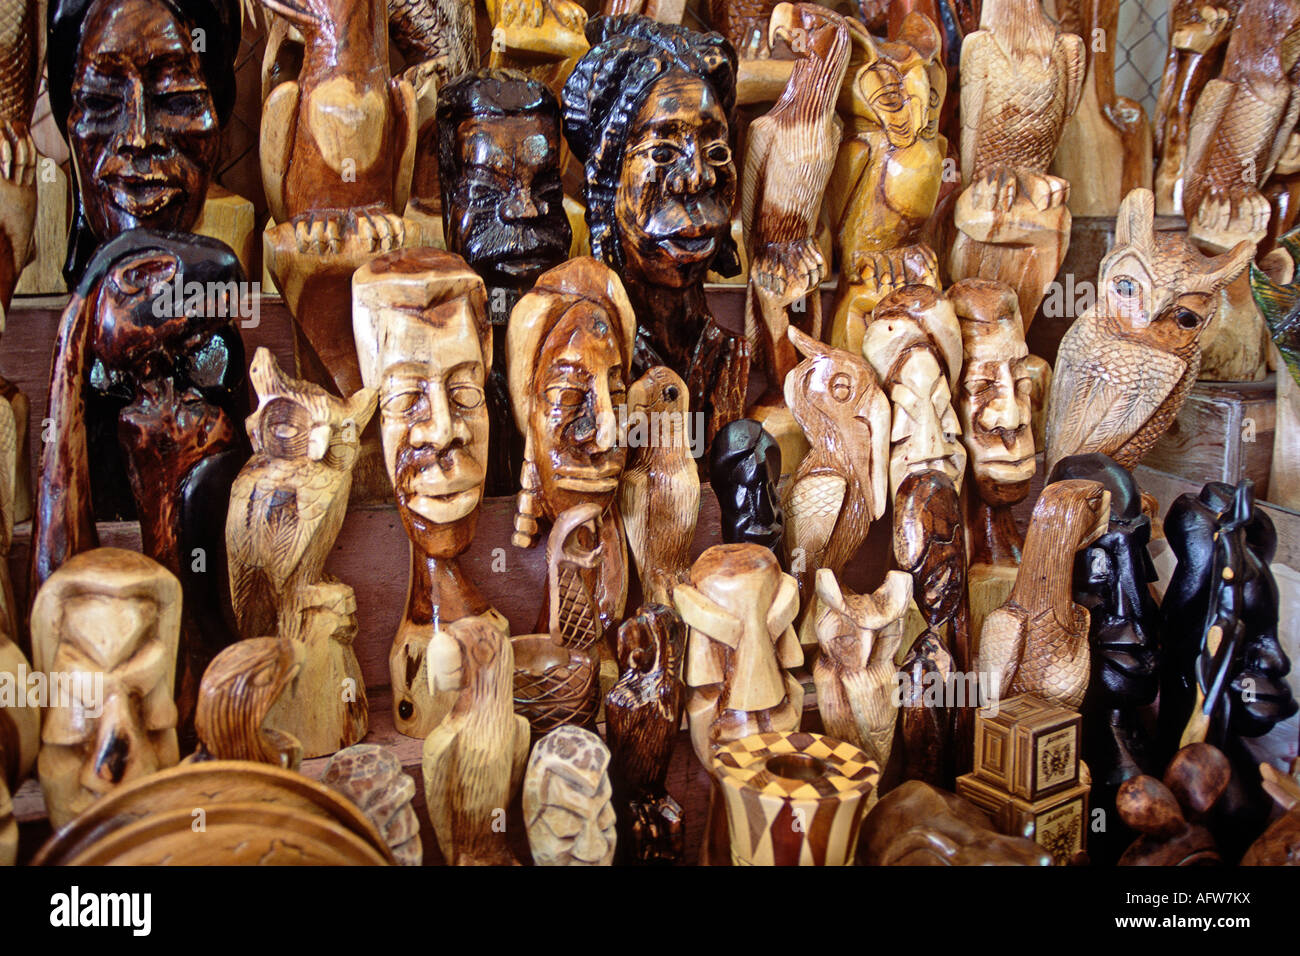 Carved wooden items for sale at teh straw market in nassau